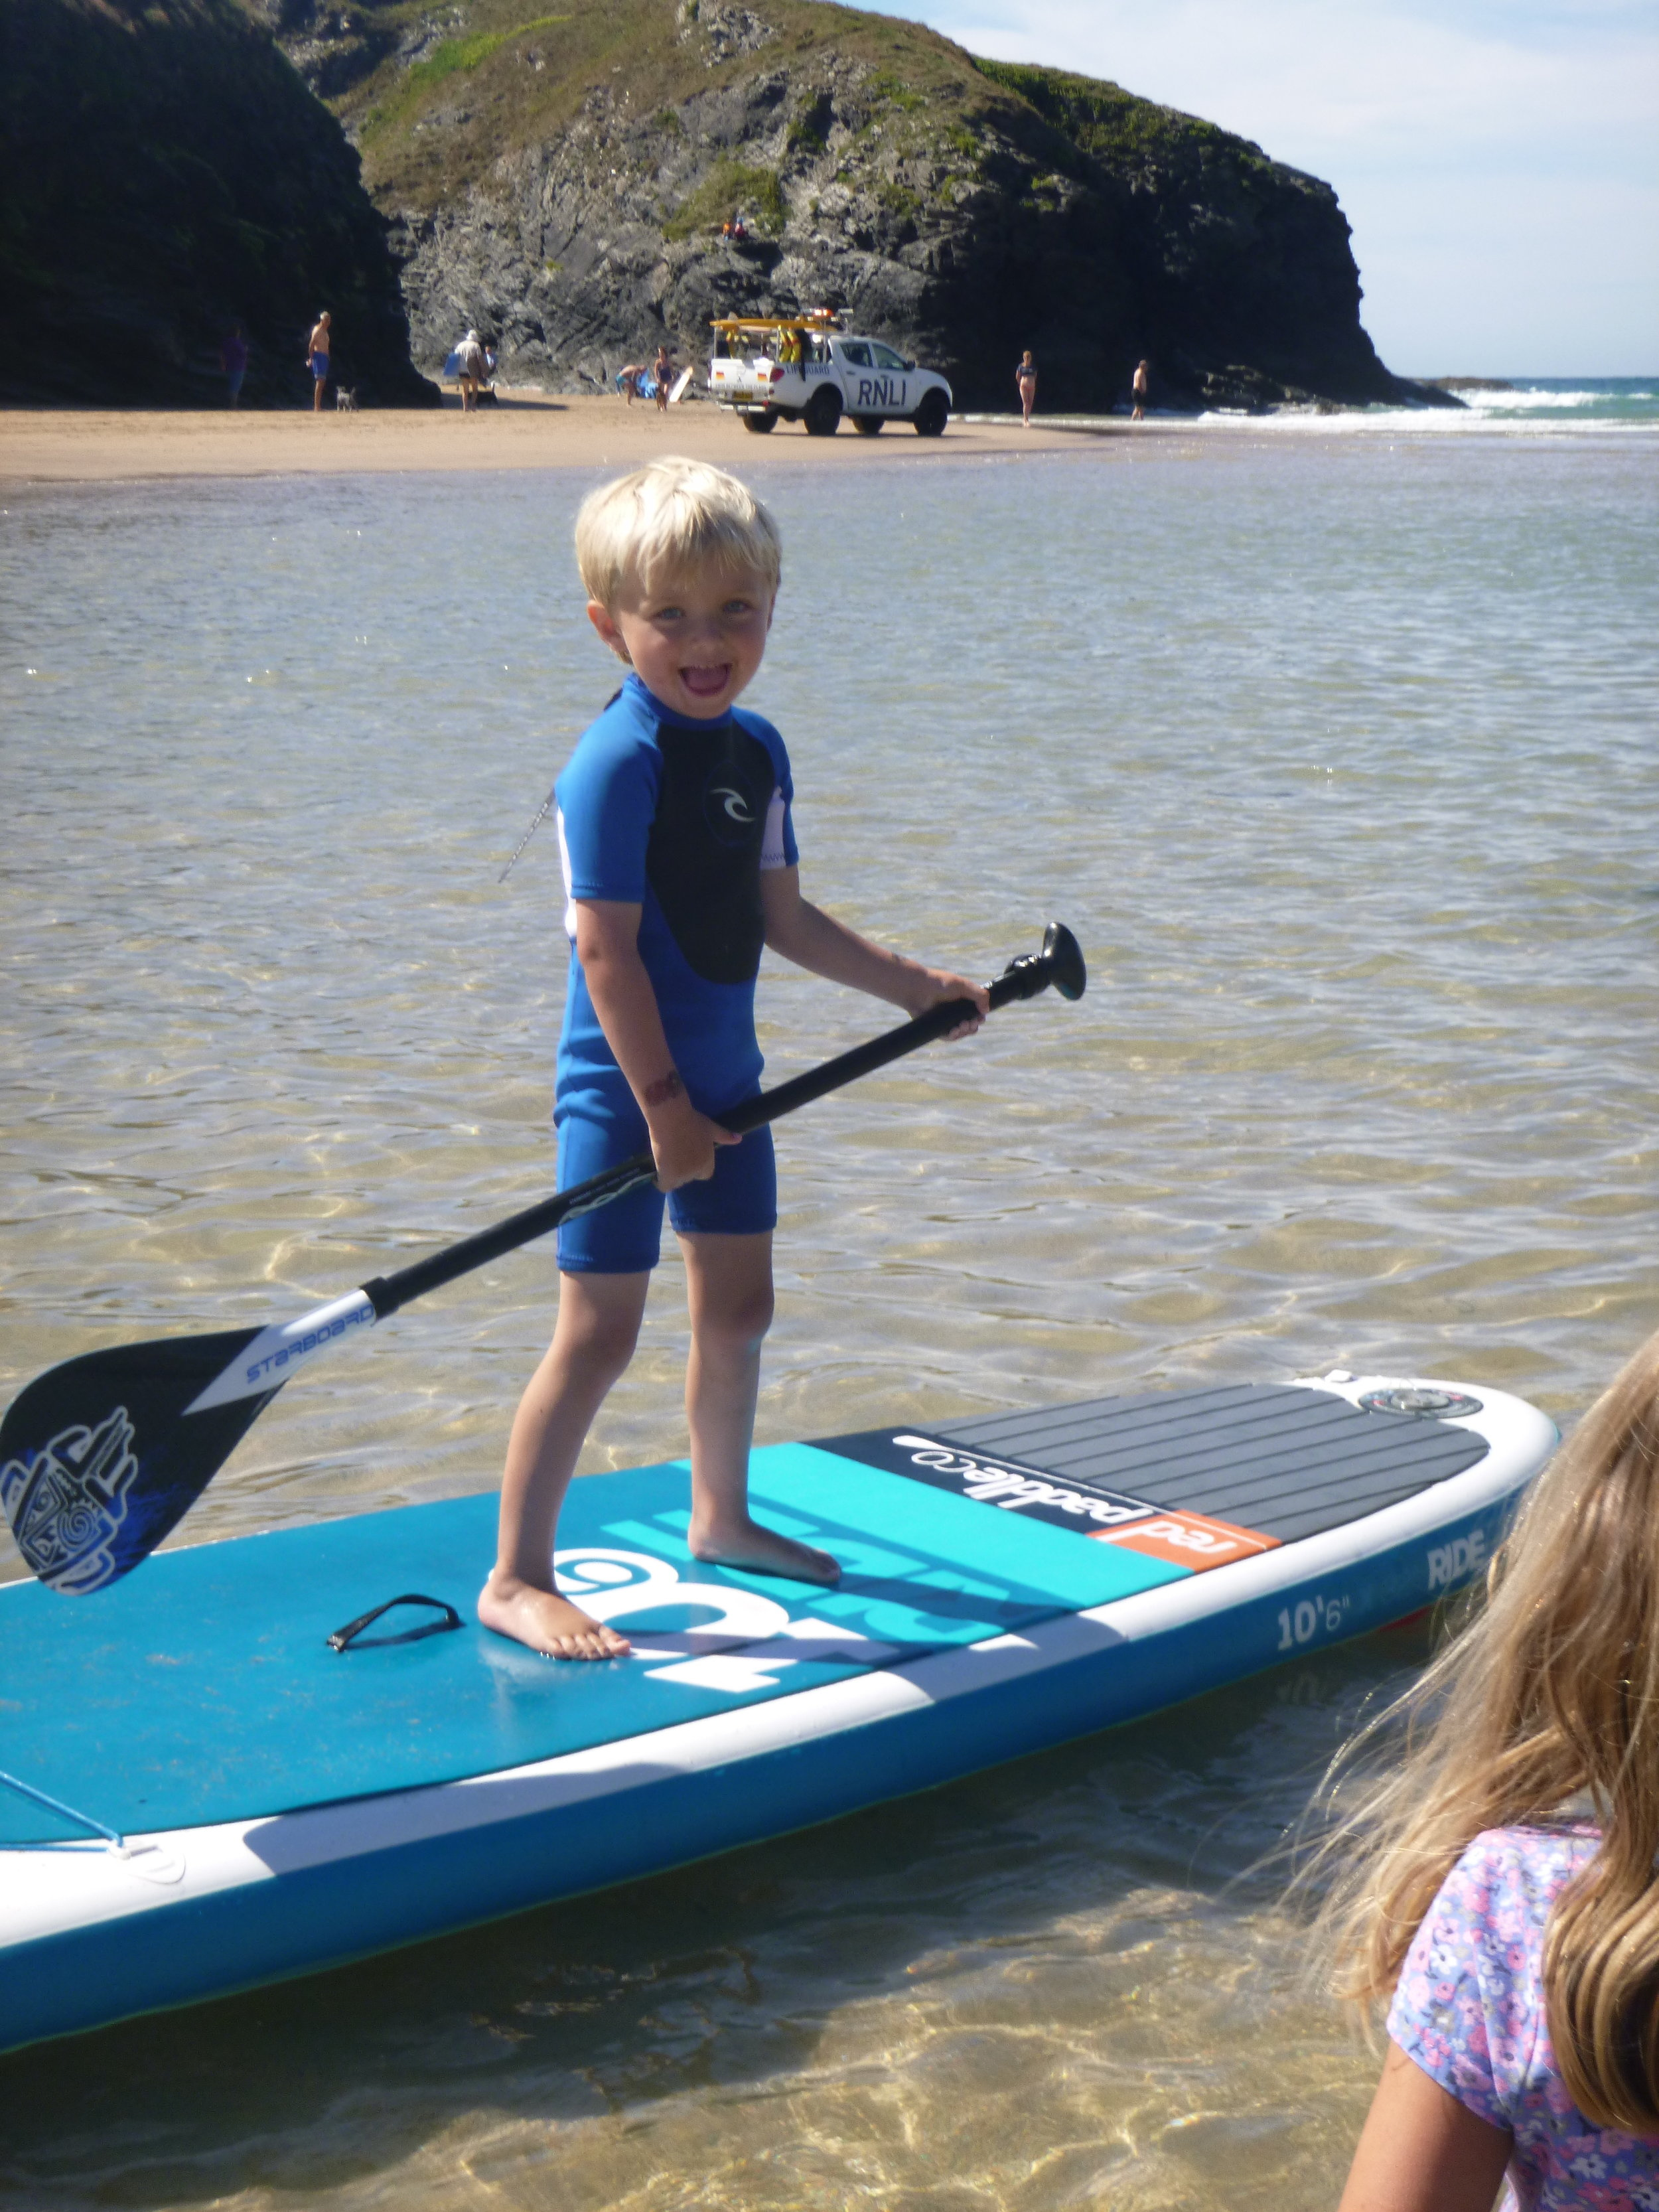 Porthcothnan trying out the new Starboard Children's Paddle